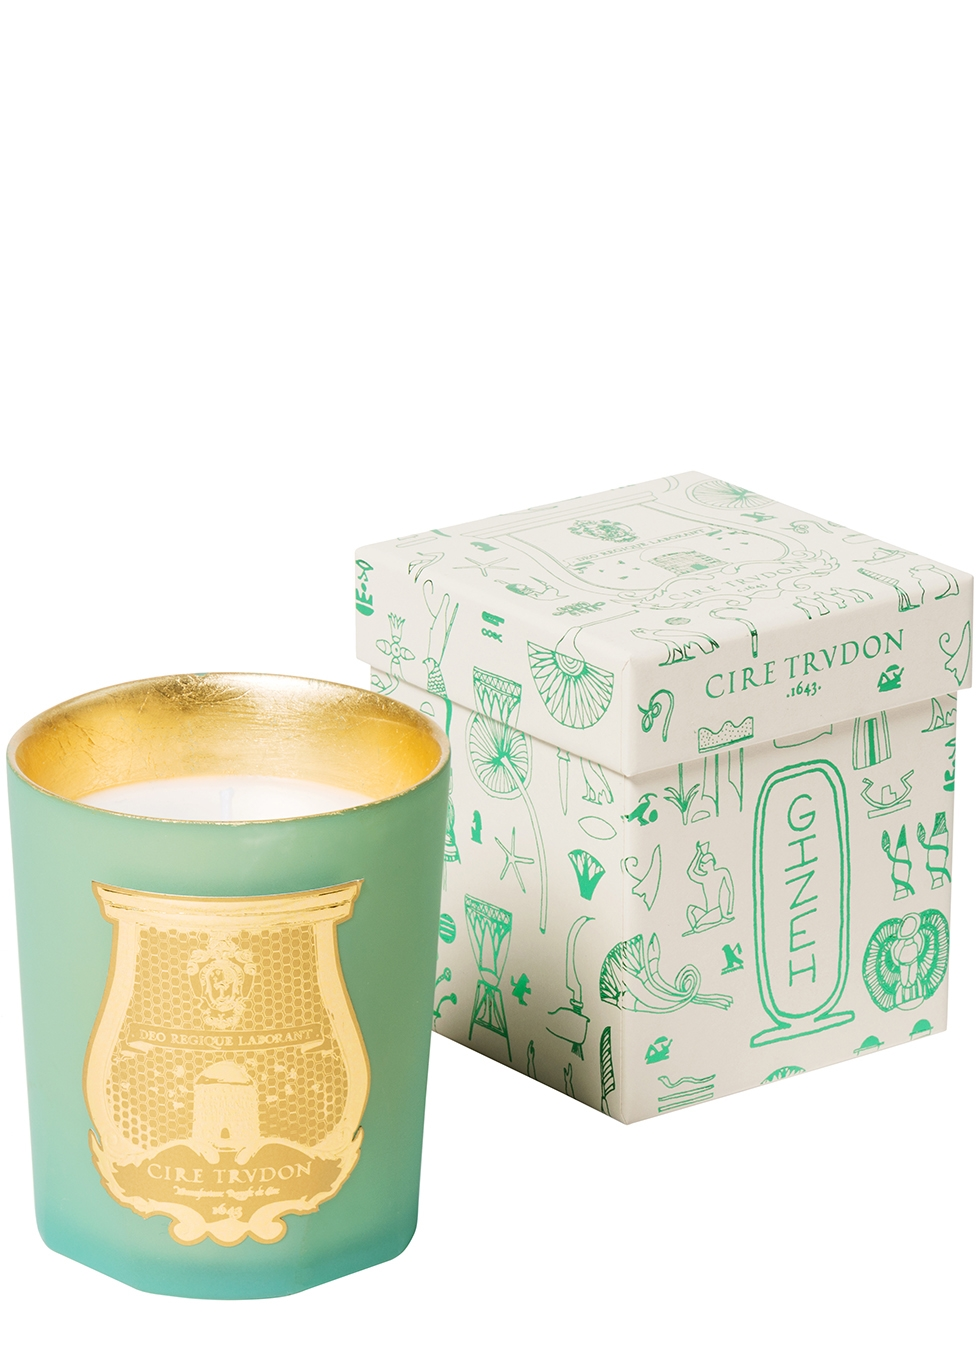 Gizeh Inalterable Pyramids Candle 270g - TRUDON